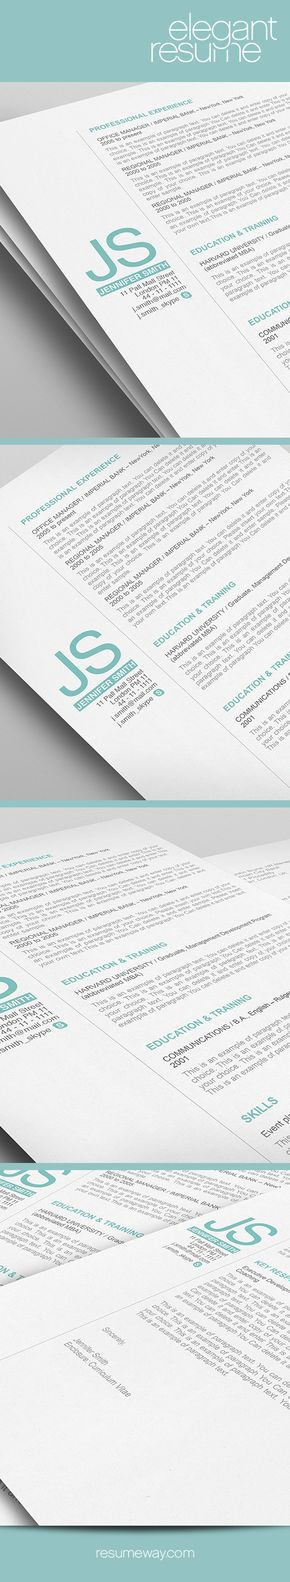 Resume Template 110510 Resume cover letter template, Cover letter - apple pages resume templates